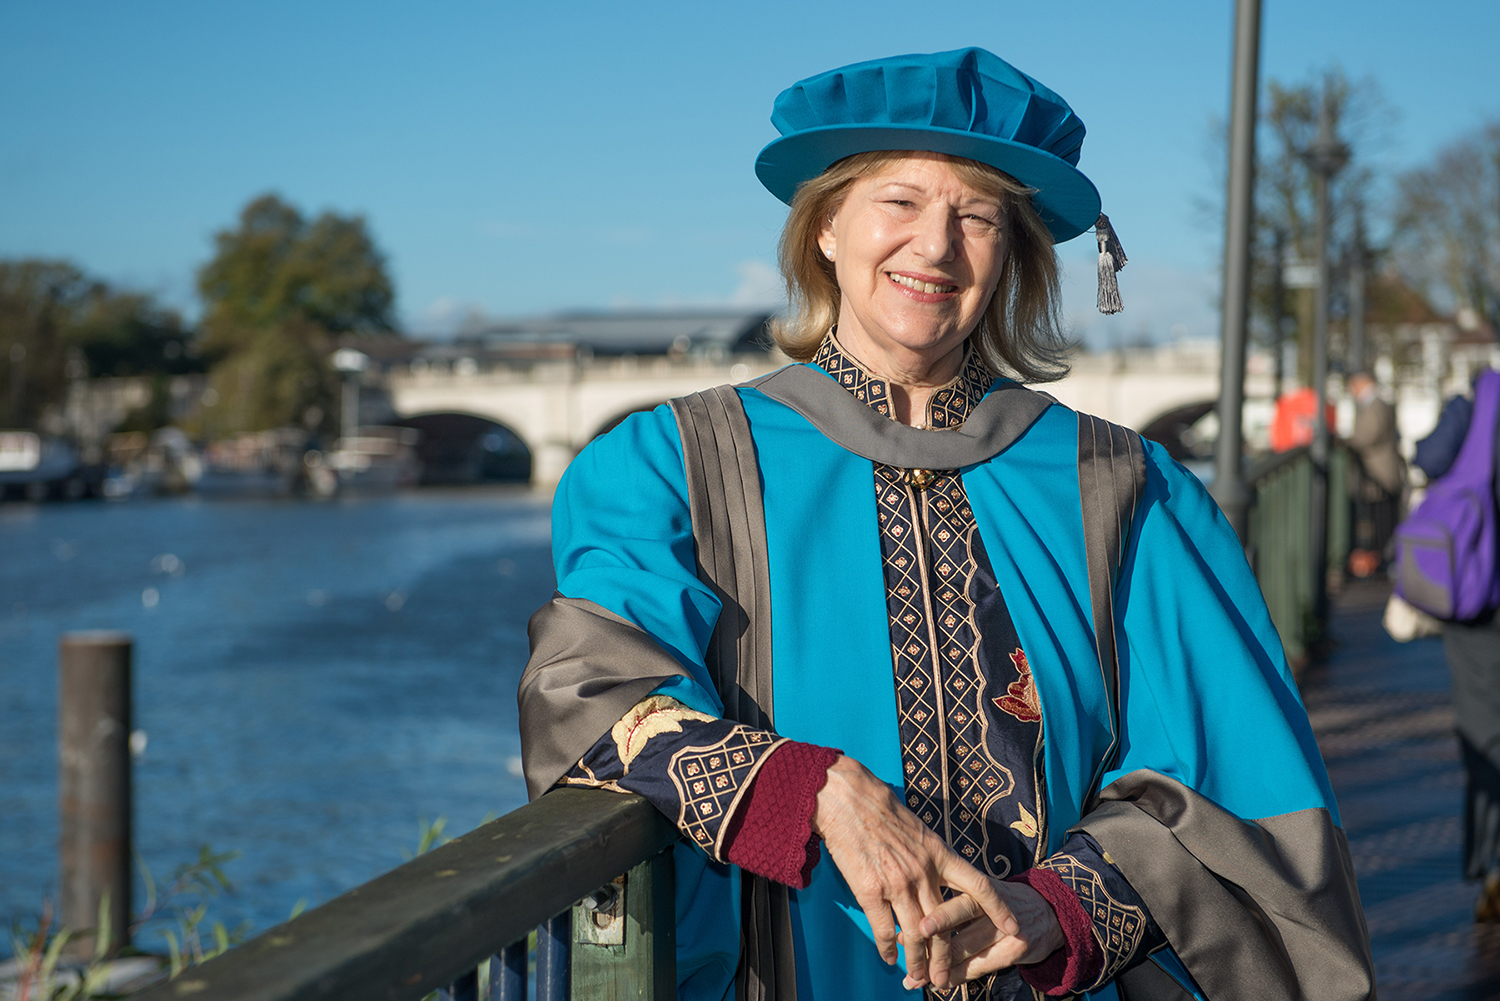 Baroness Nicholson of Wintetrbourne after accepting a Doctorate of Letters from Kingston University 12 November